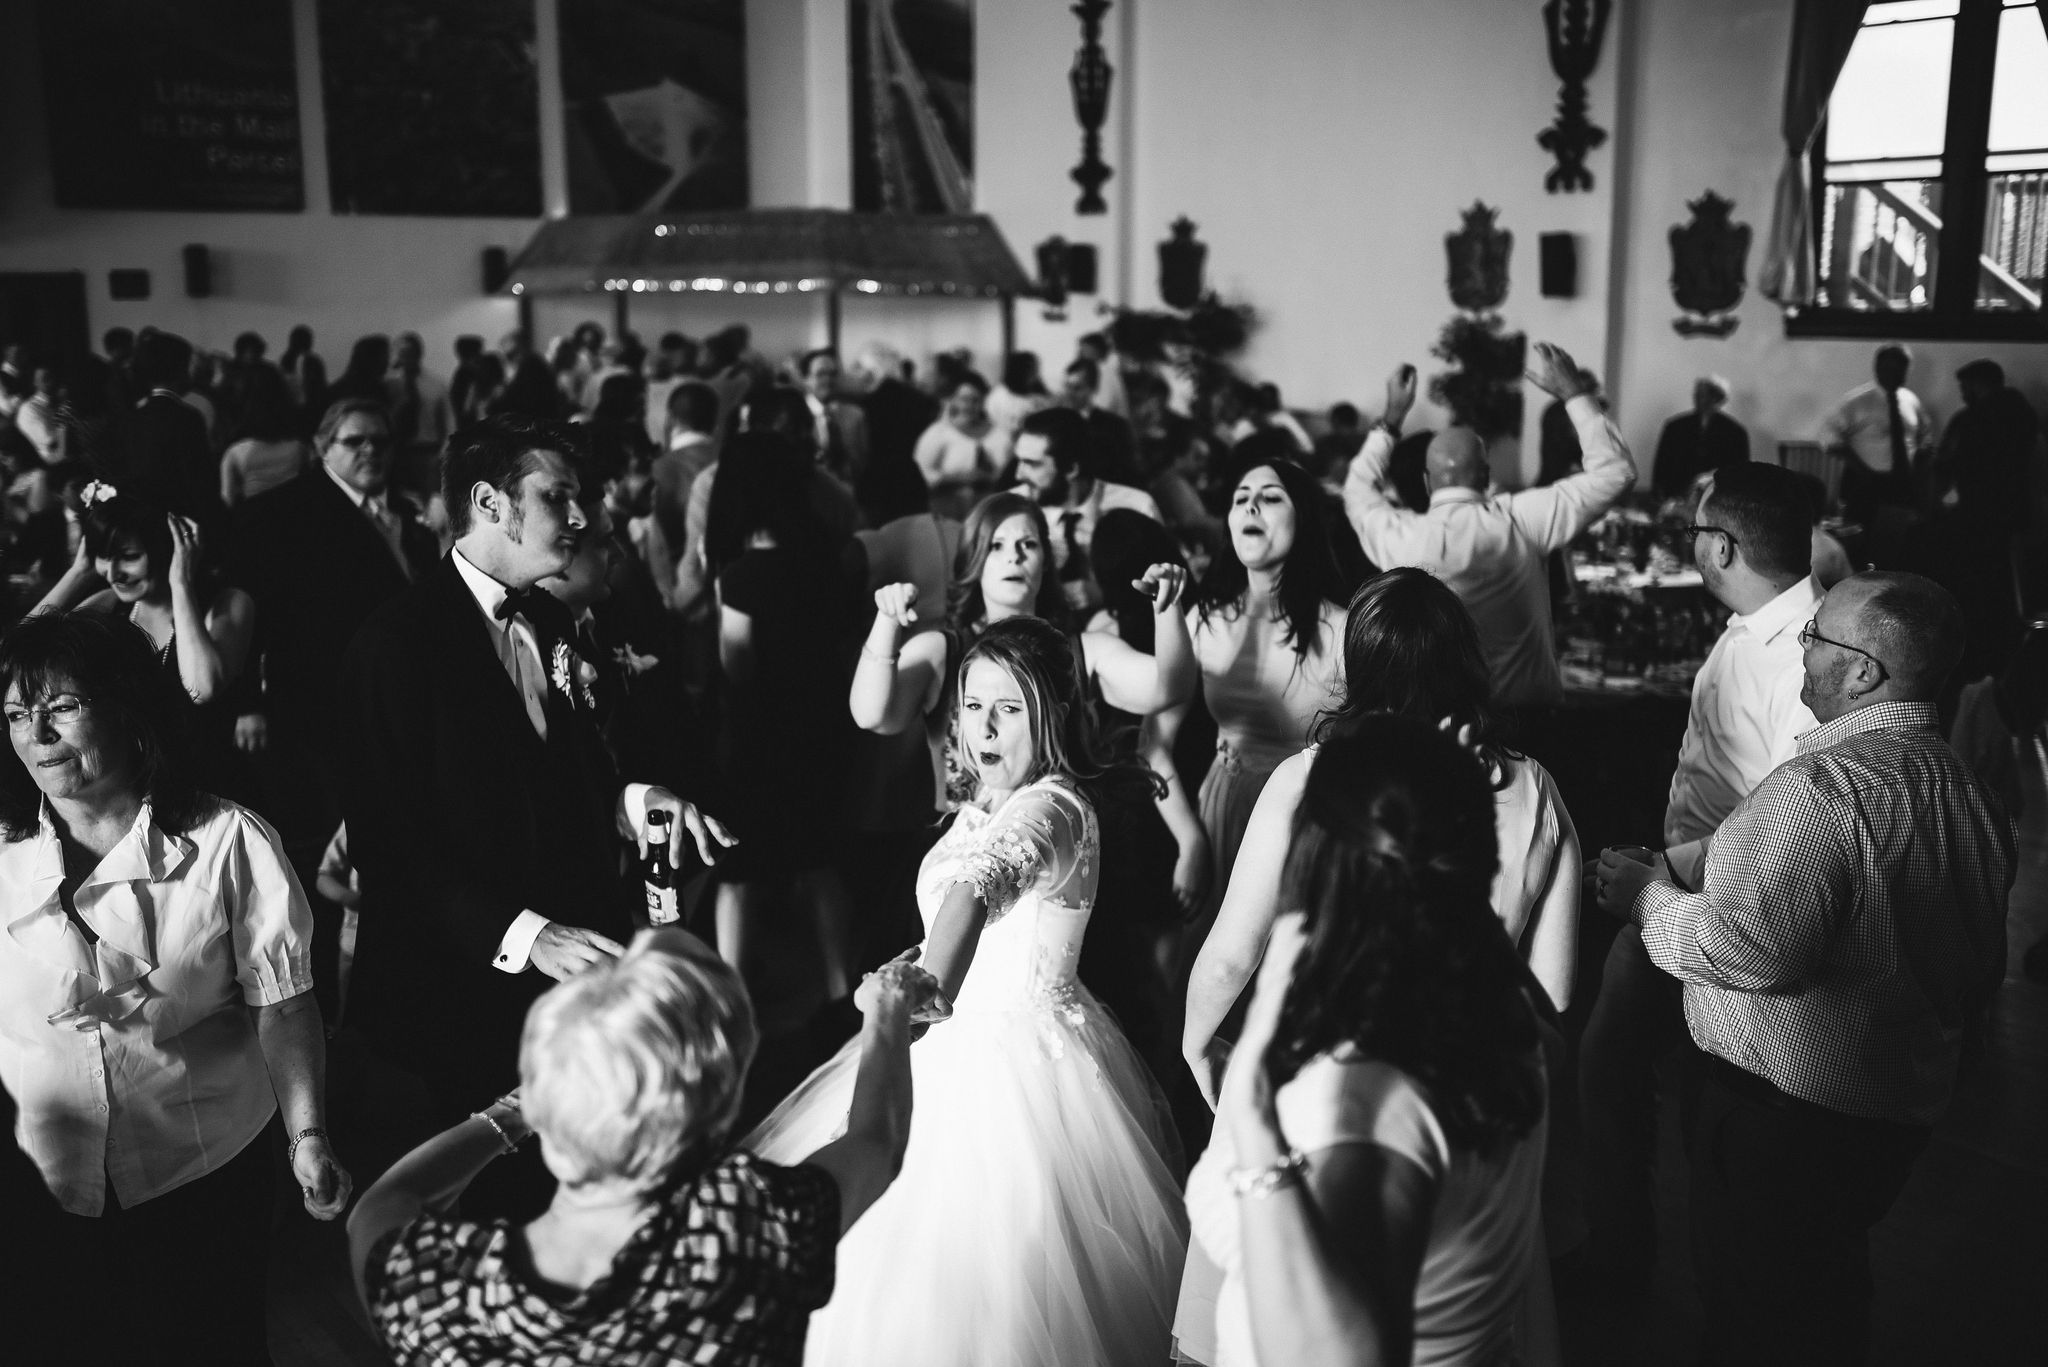 Baltimore, Lithuanian Dance Hall, Maryland Wedding Photographer, Vintage, Classic, 50s Style, Bride Dancing with Family, Black and White Photo, Wedding Guests Having Fun